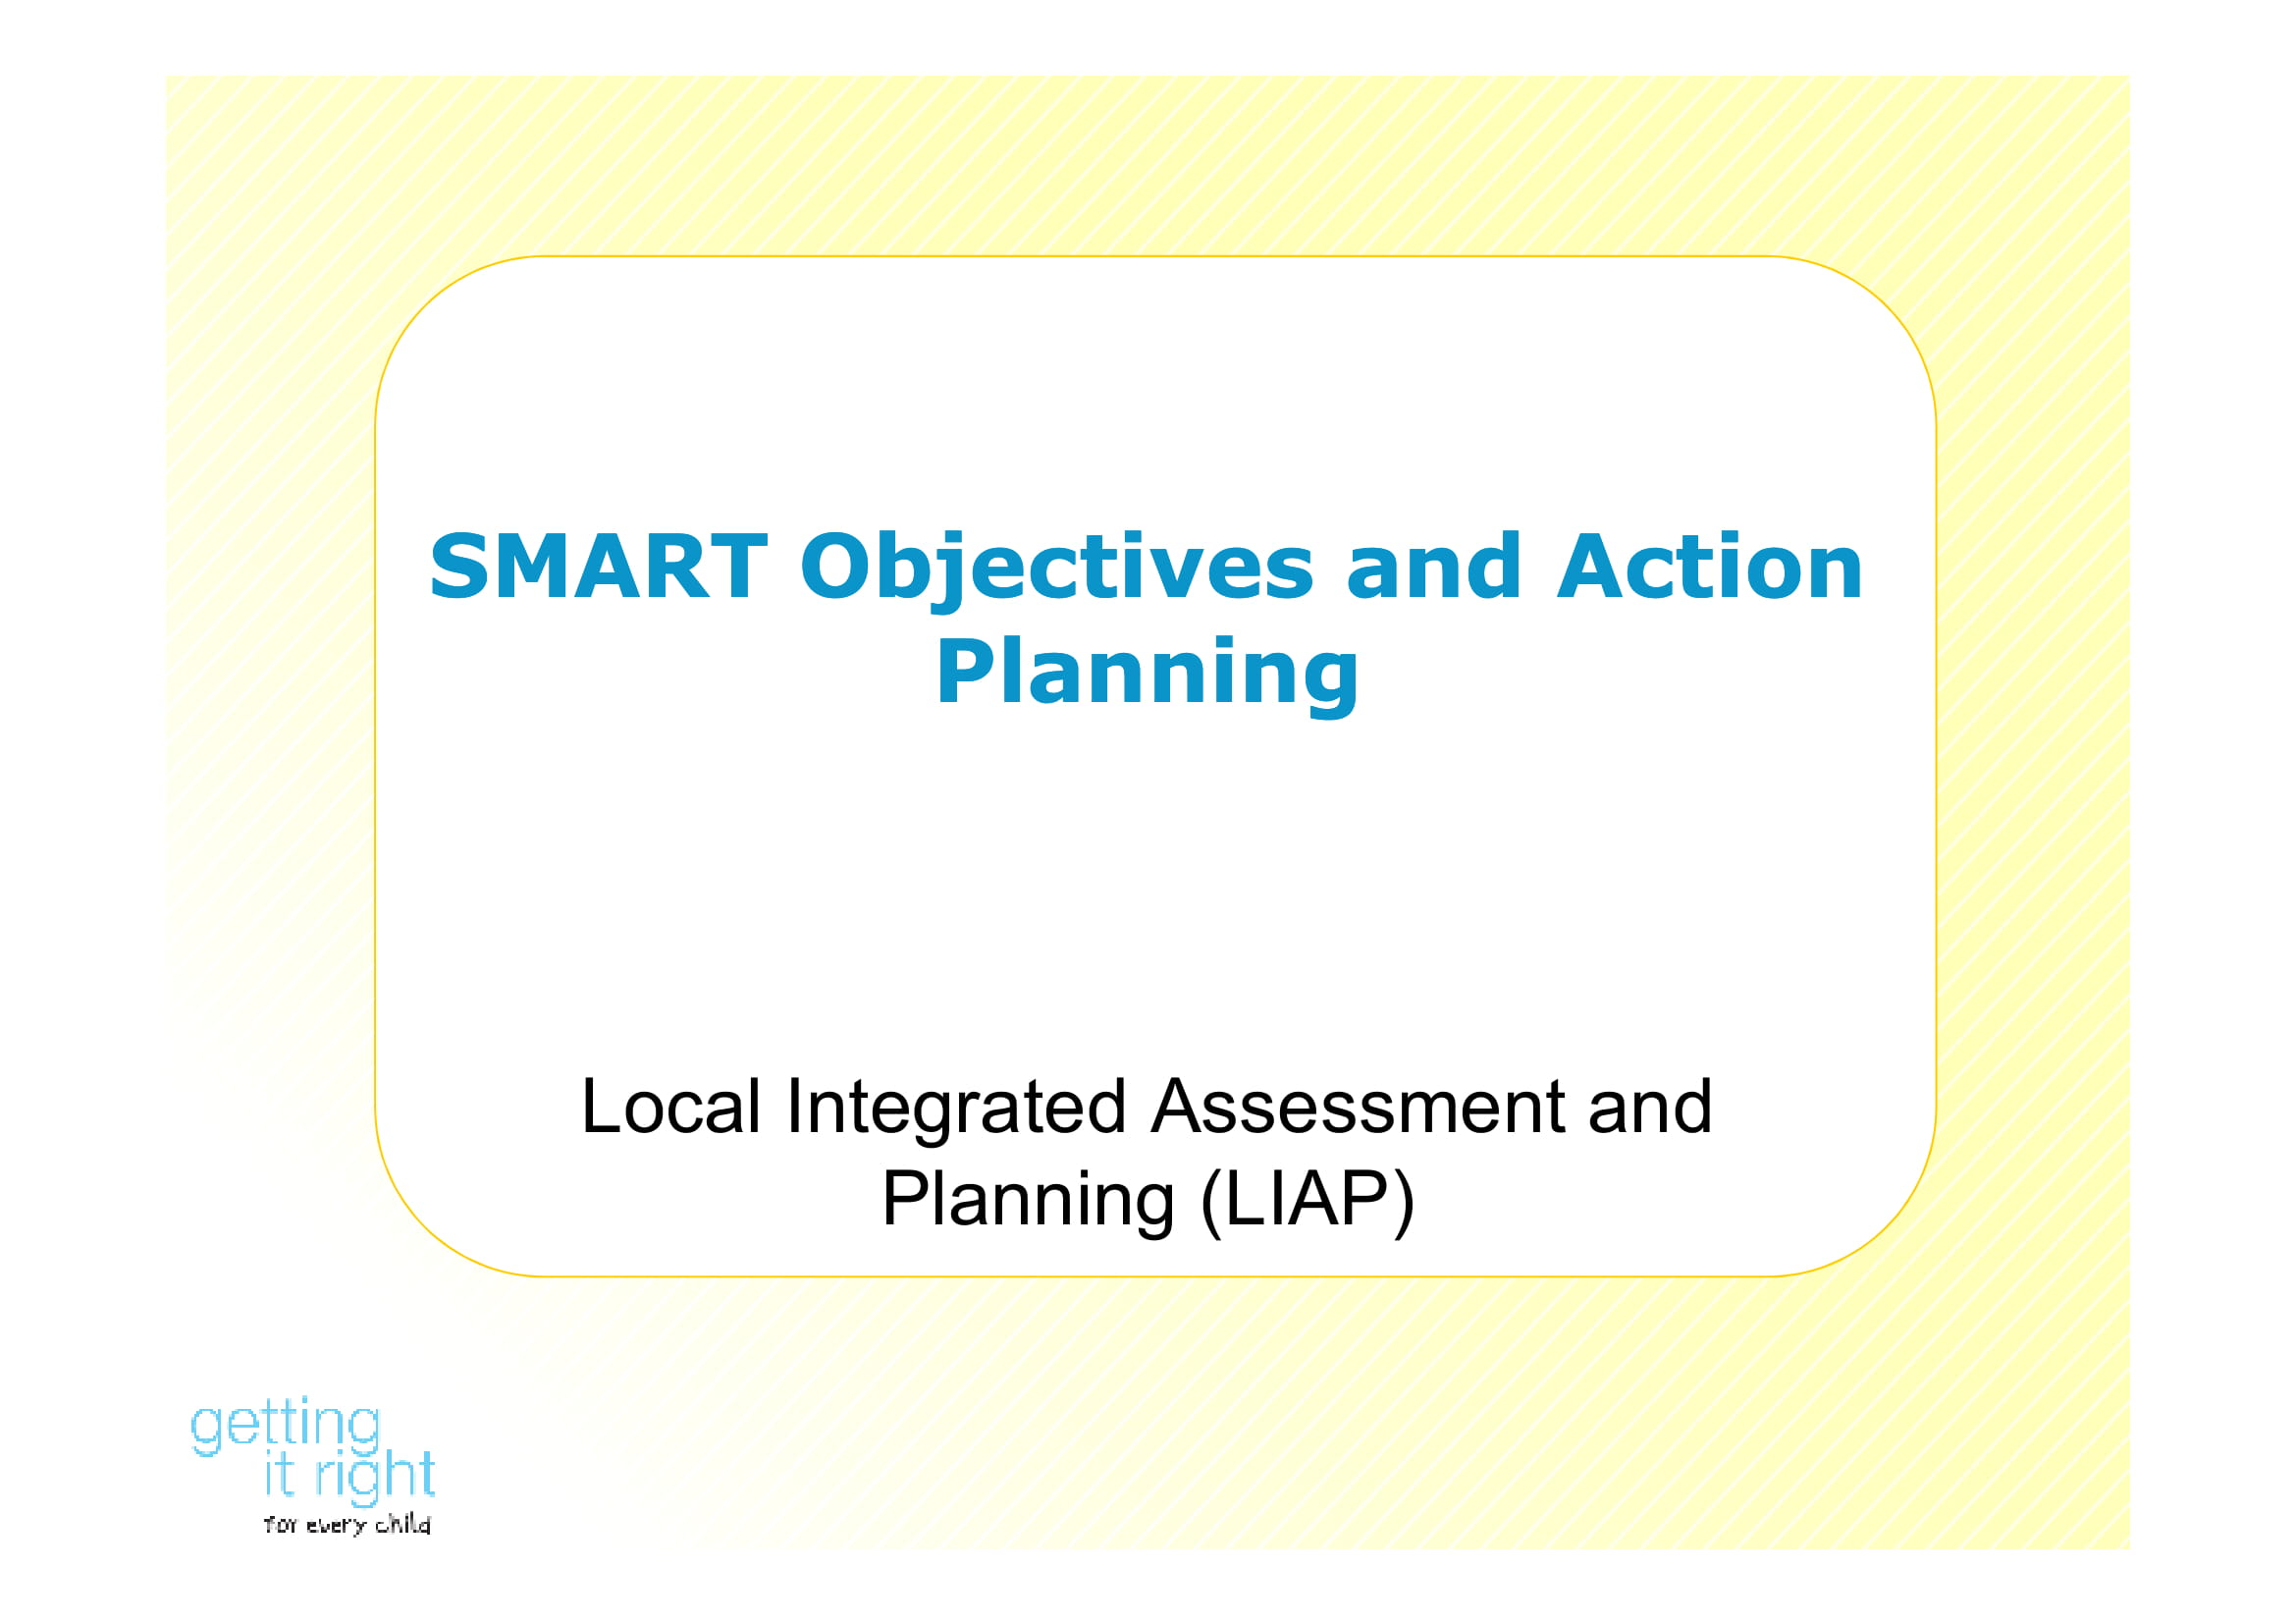 smart objectives and action planning example 01